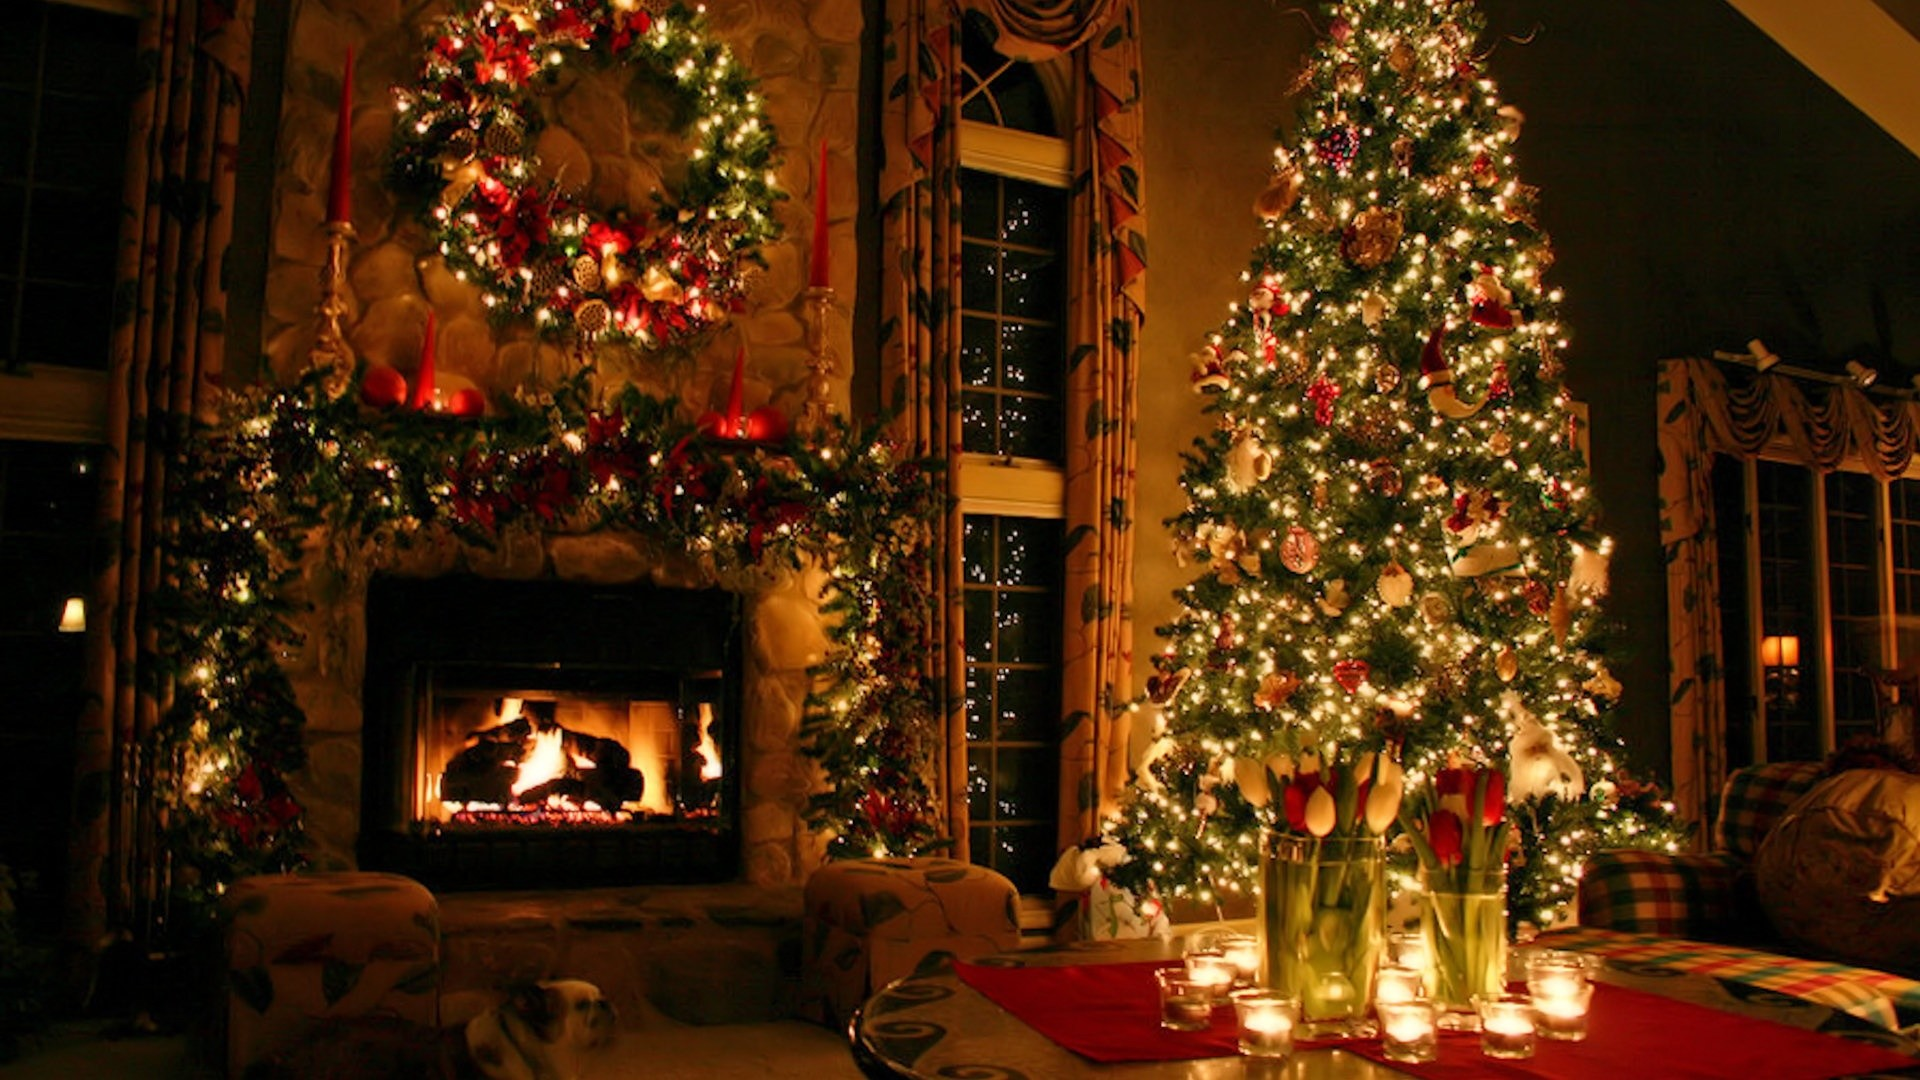 Marvelous Christmas Desktop Wallpapers 62 Pictures Home Interior And Landscaping Eliaenasavecom